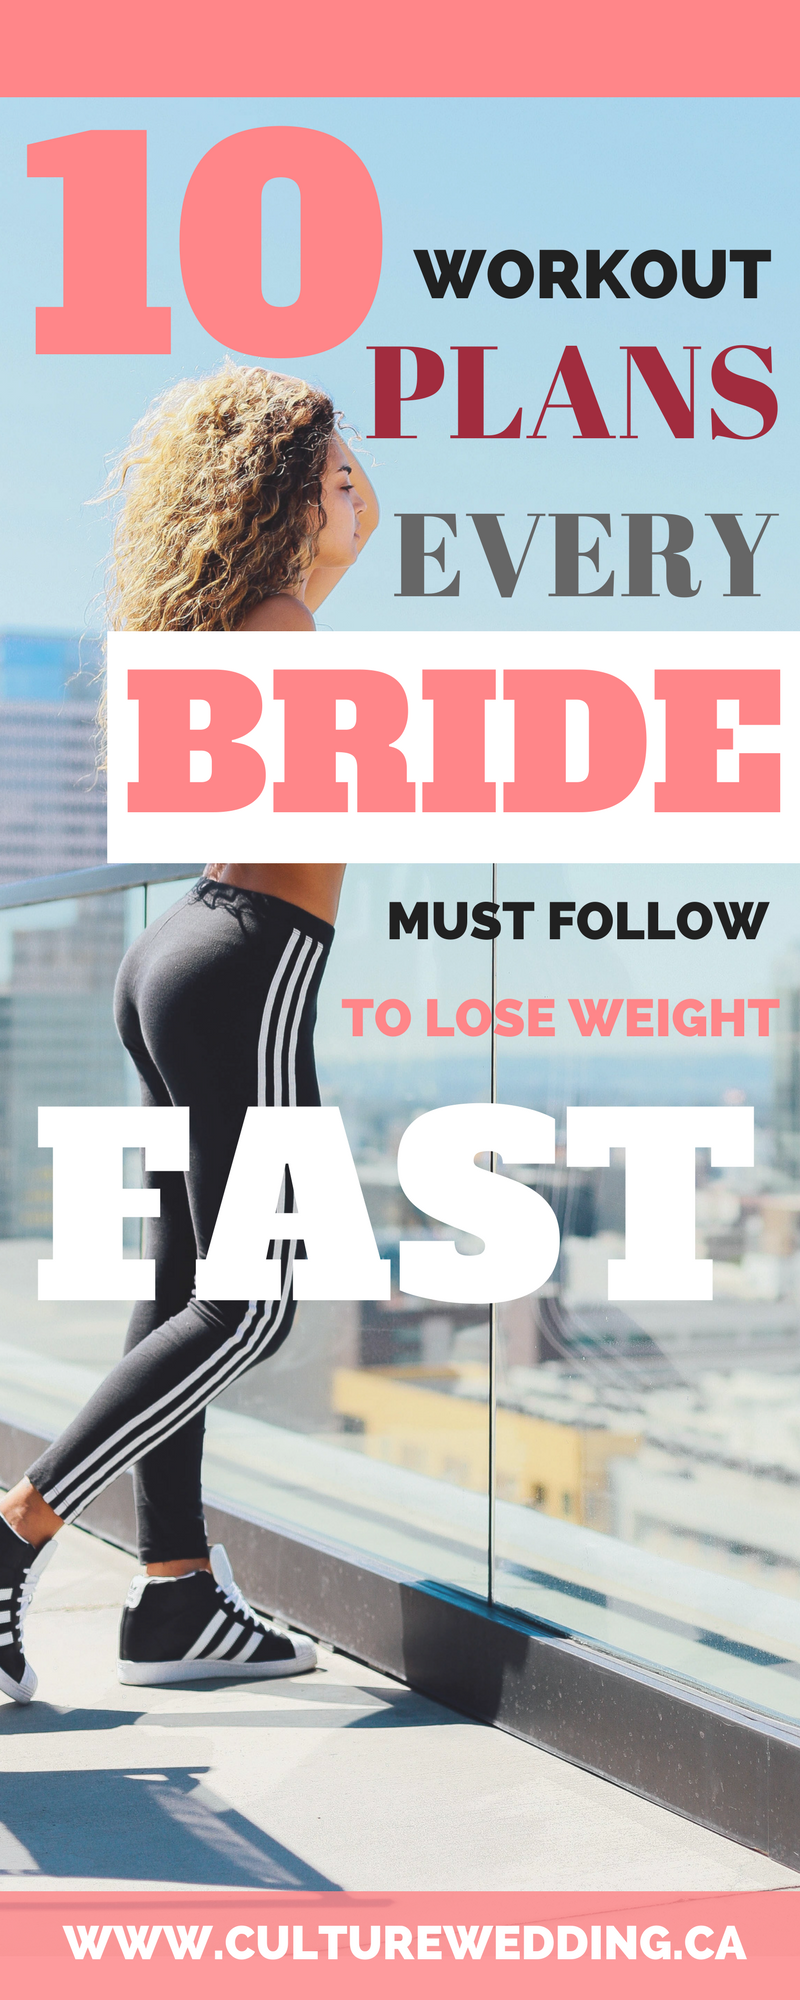 Lose weight fast for brides.